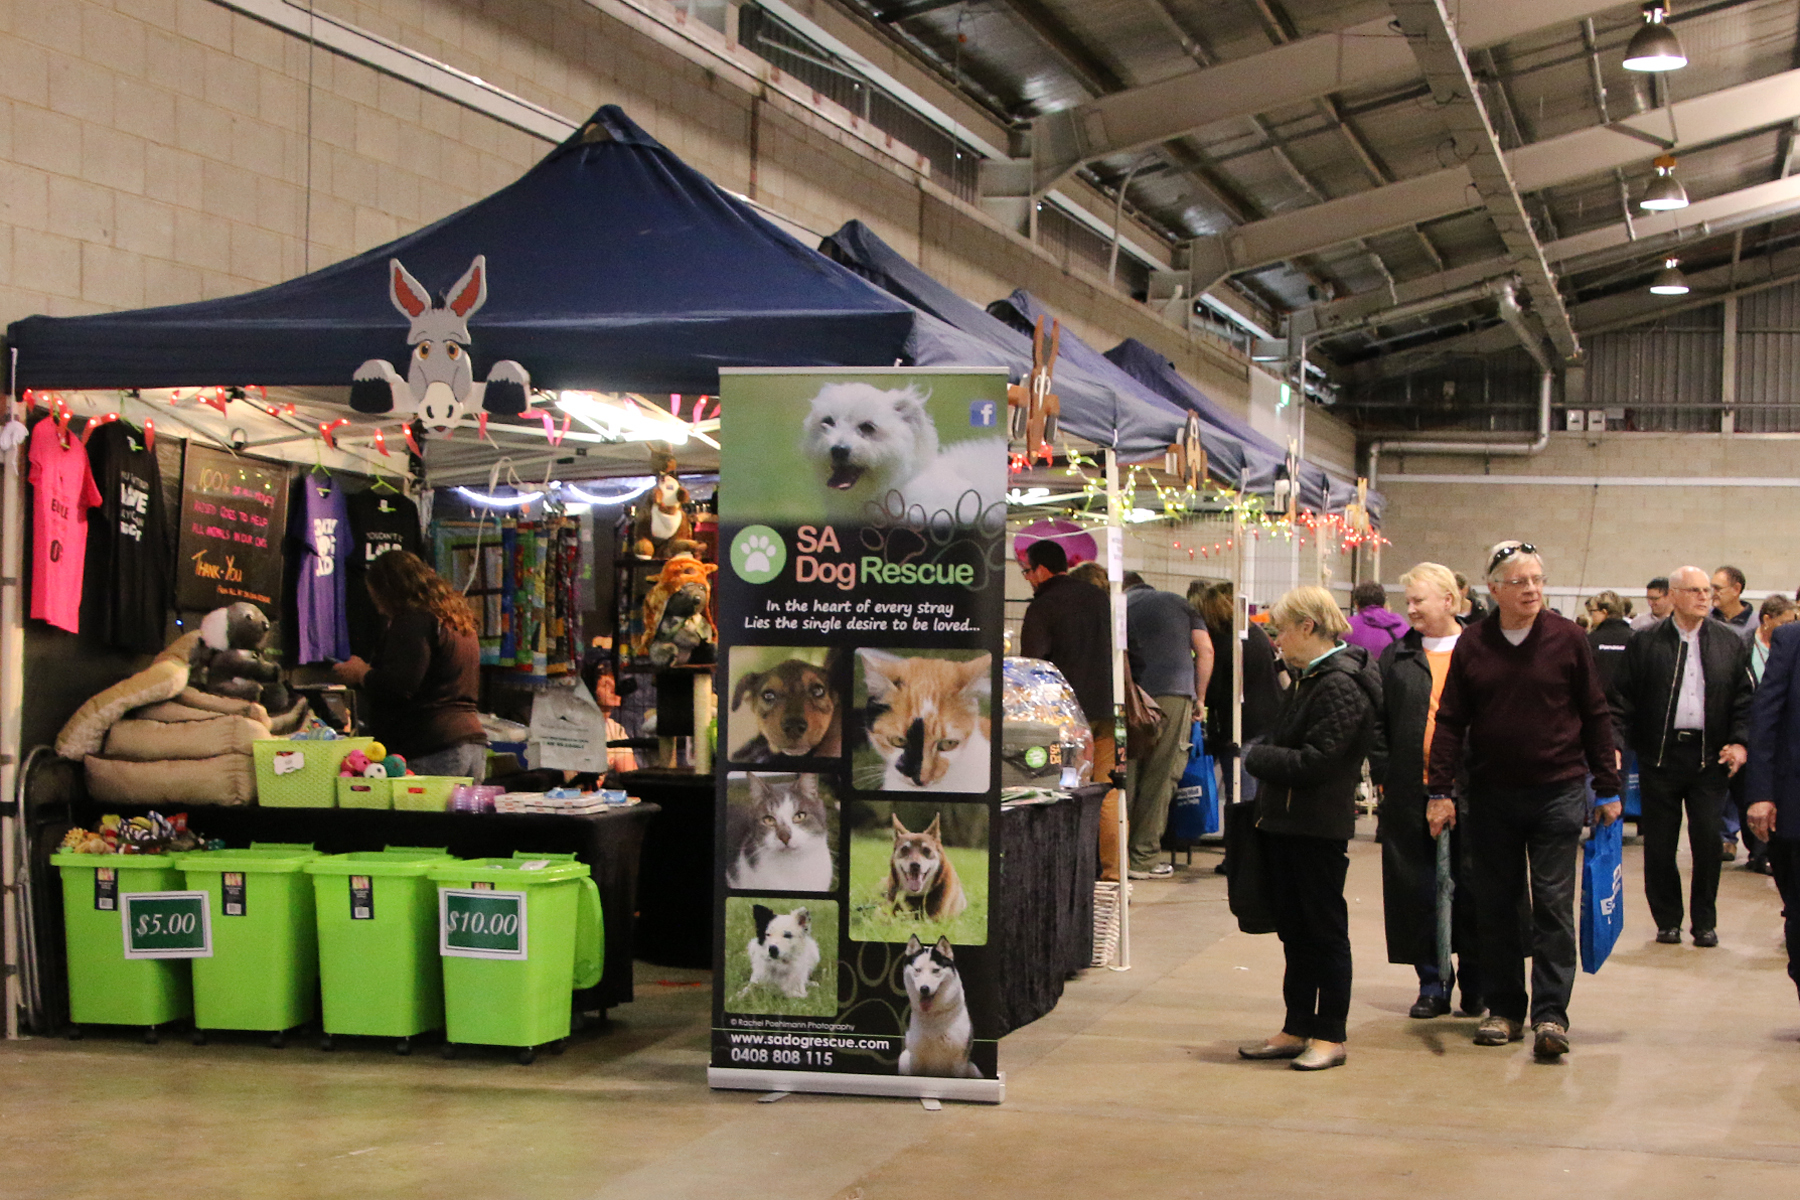 Exhibition Displays Adelaide : Adelaide animal expo